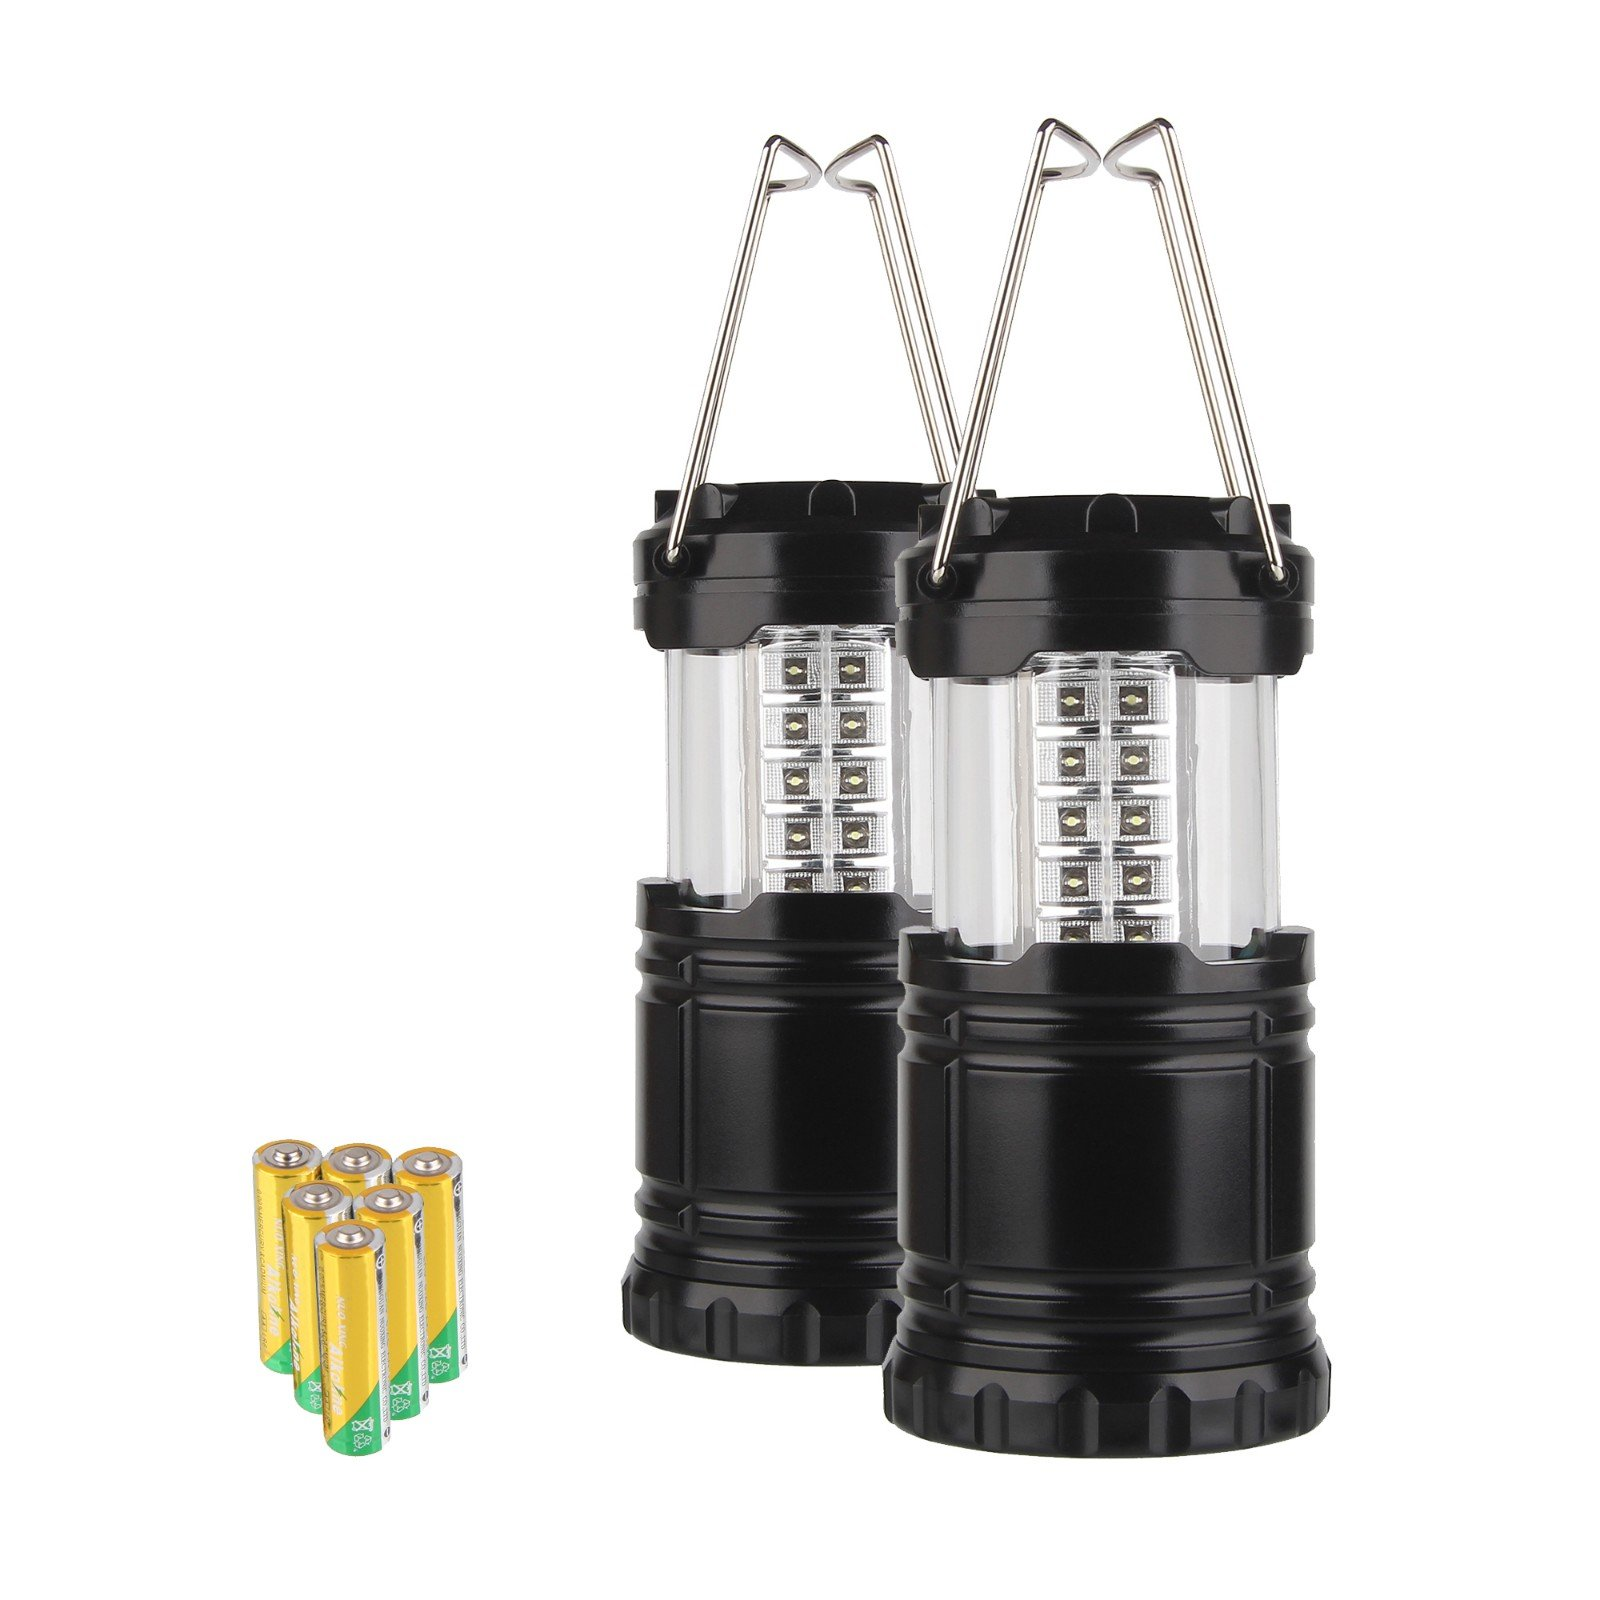 Beauty7 Pack of 2 Collapsible Portable 30LED Bright Hanging Camping Tent Lantern with 6X AA Batteries for Hiking Fishing Trekking Hurricane Storm Outage Emergency